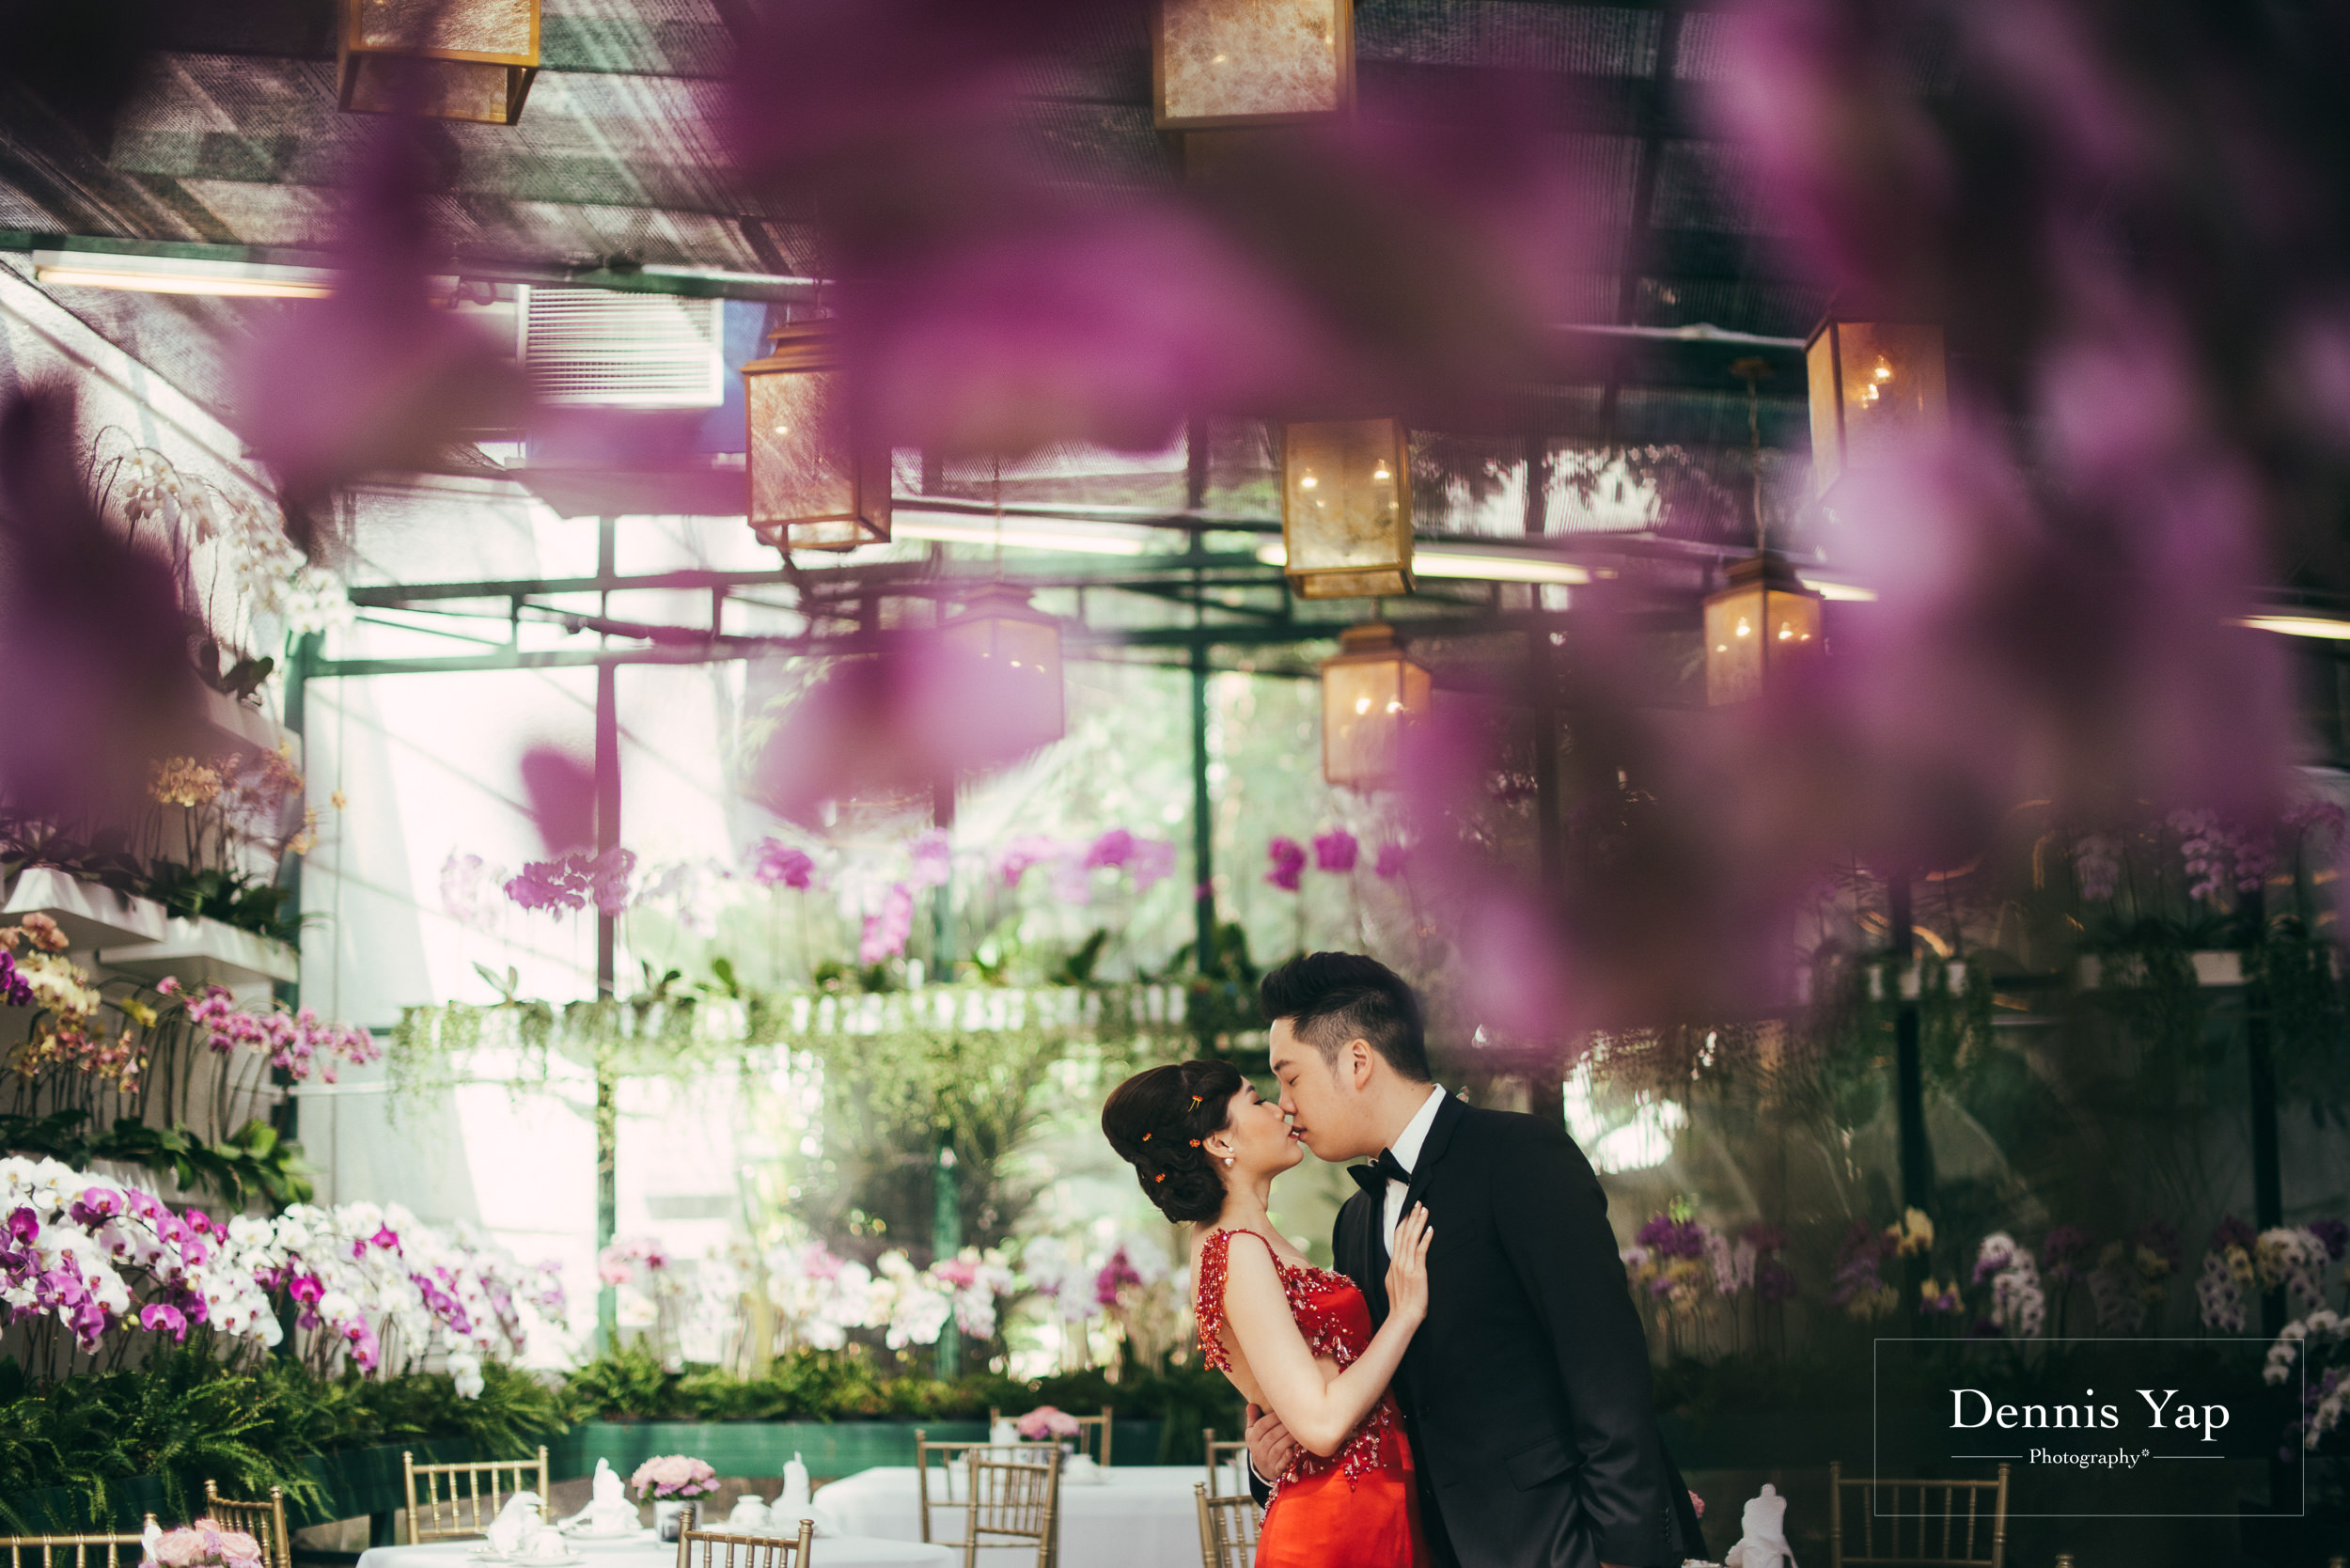 ivan constance pre wedding majestic hotel dennis yap photography luxury style calm serious-11.jpg